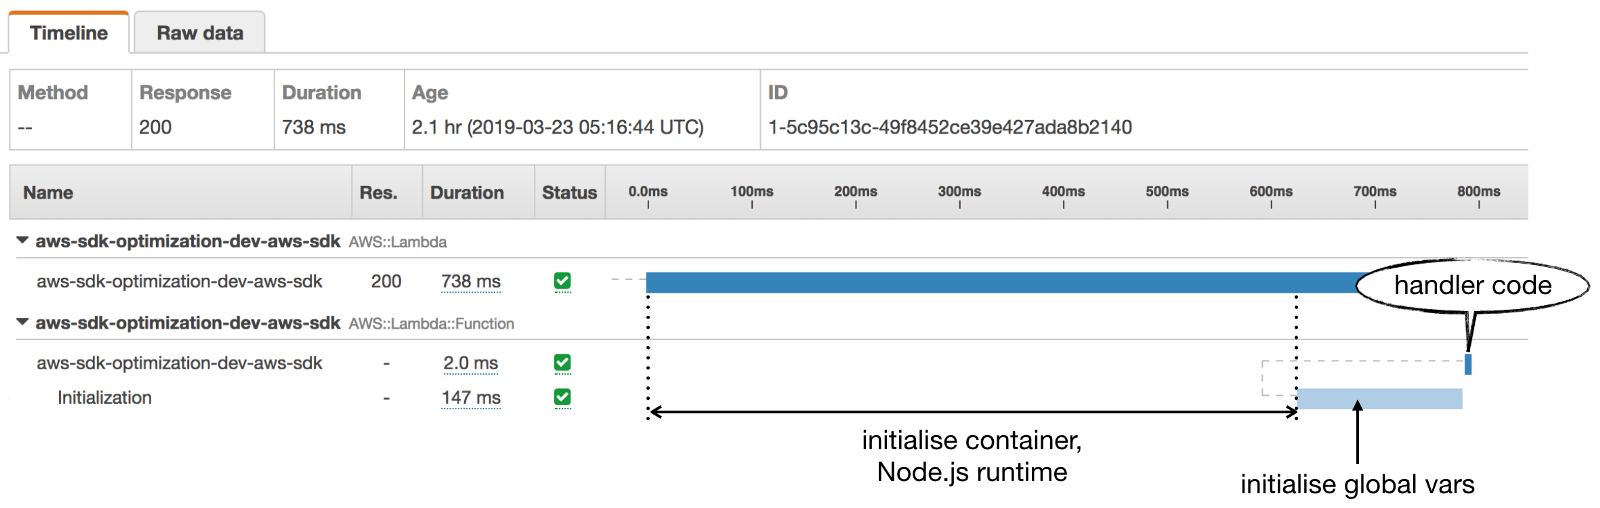 /just-how-expensive-is-the-full-aws-sdk-abc73d28f62b feature image